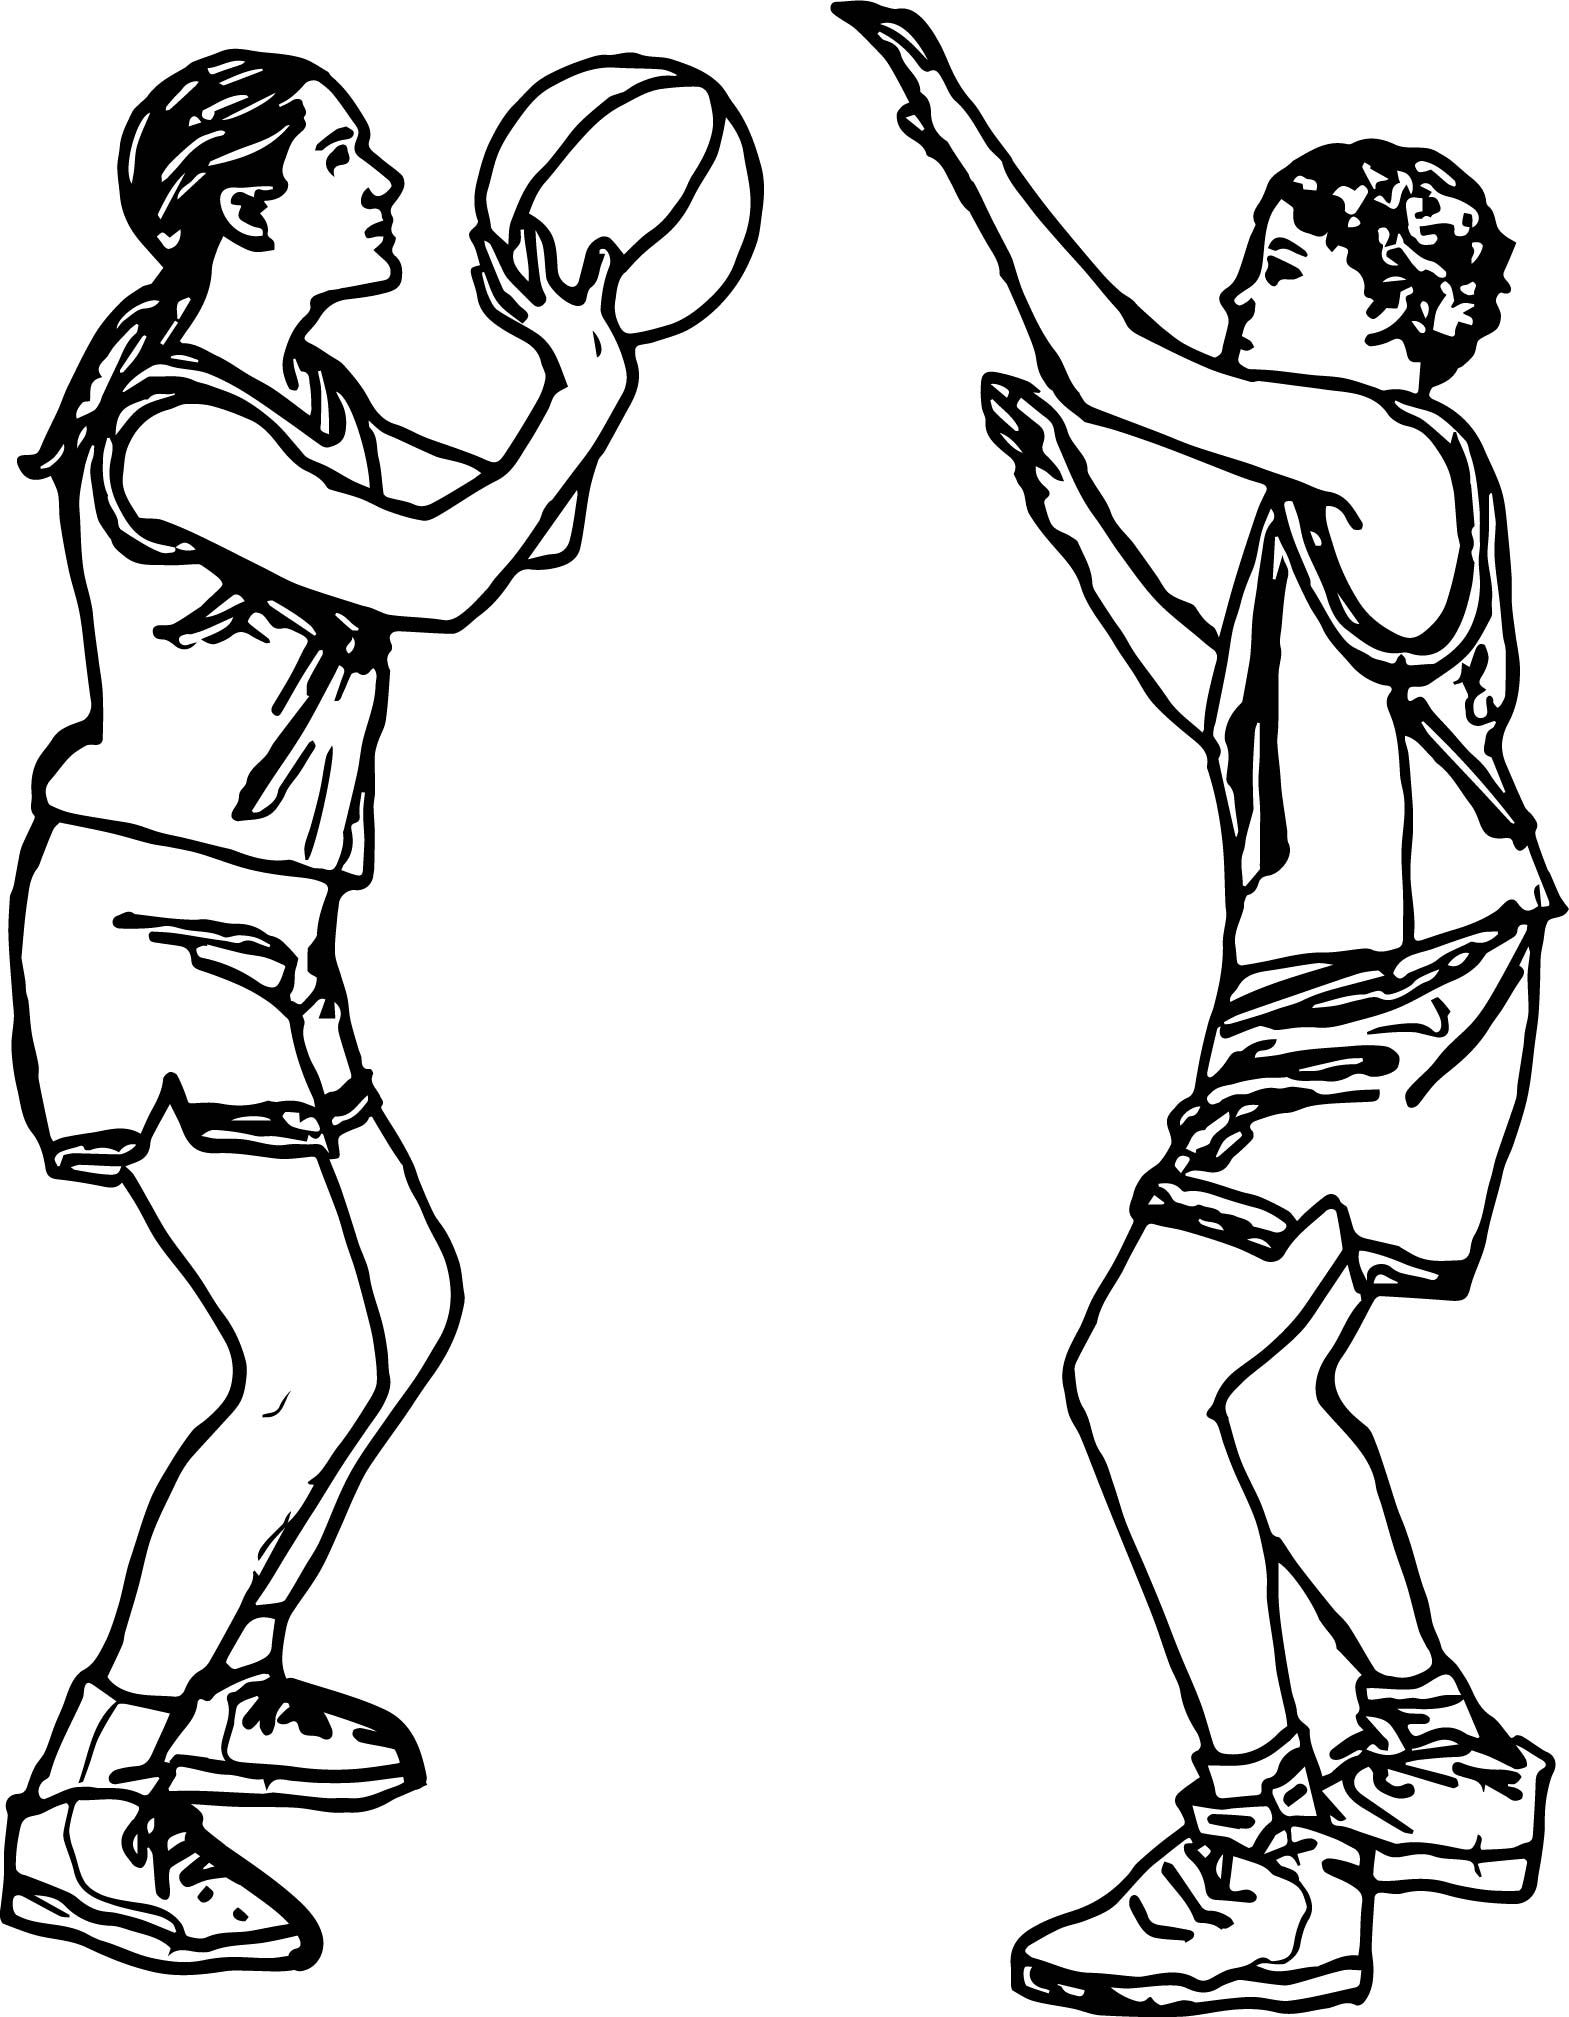 how to draw someone shooting a basketball free basketball shooter cliparts download free clip art to a how draw shooting someone basketball